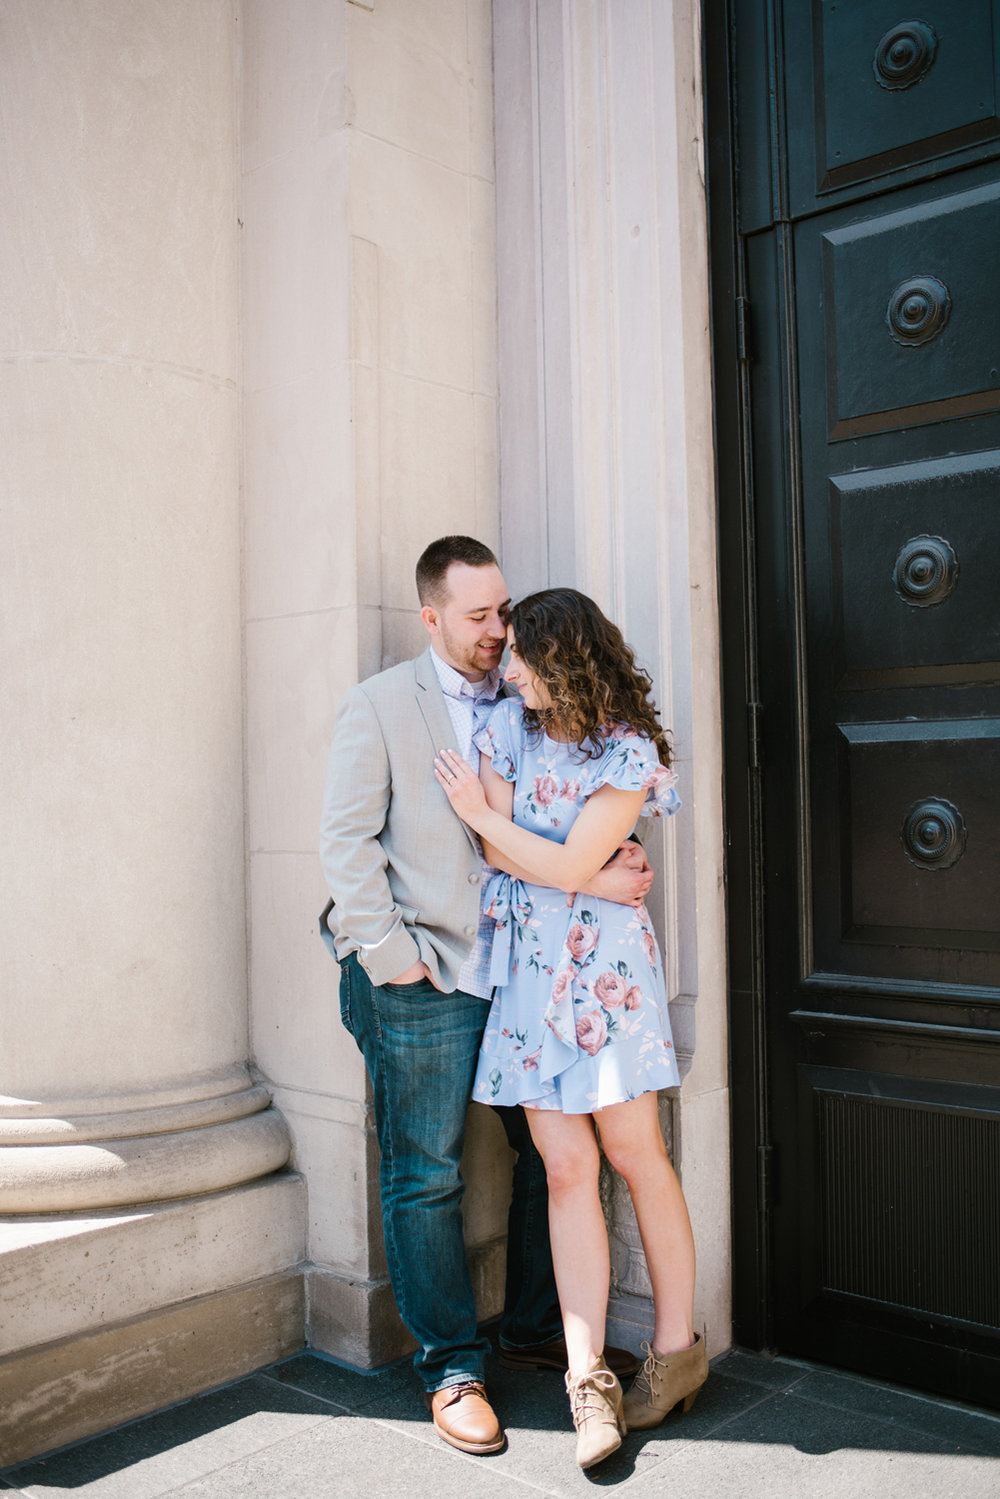 downtown-grand-rapids-michigan-engagement-photographer-spring-sydney-marie (137).jpg